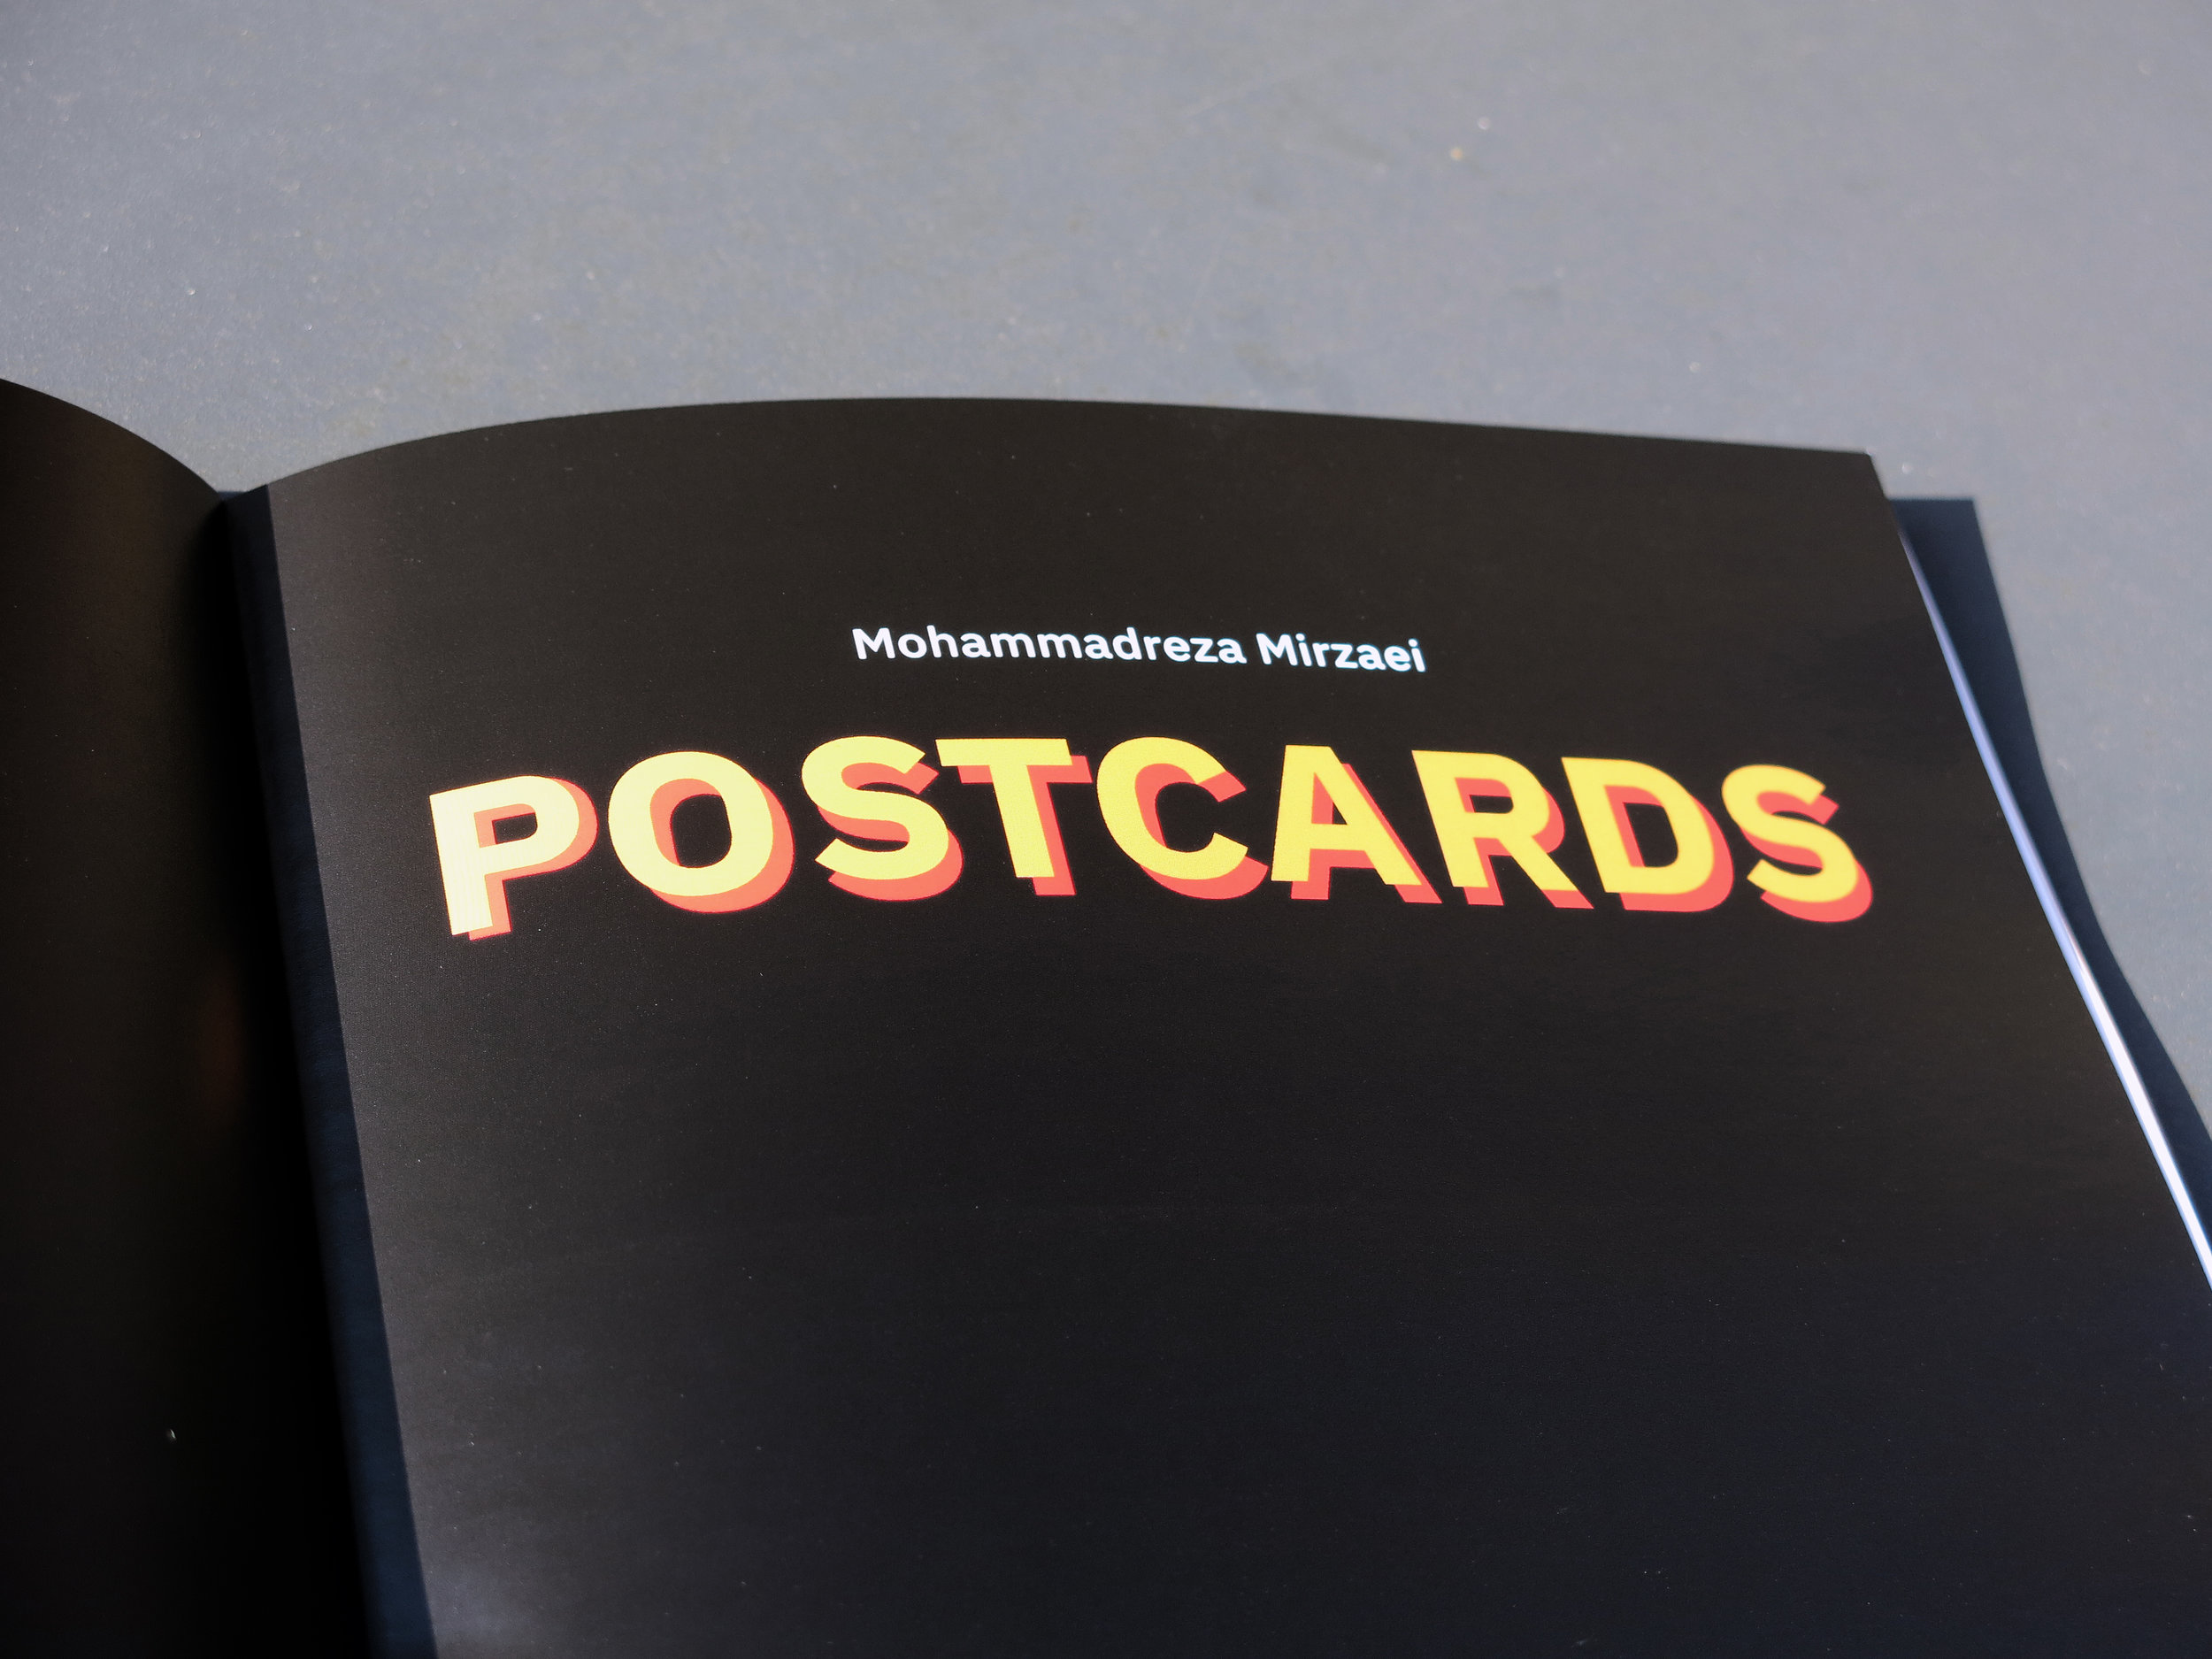 Postcards  by Mohammadreza Mirzaei